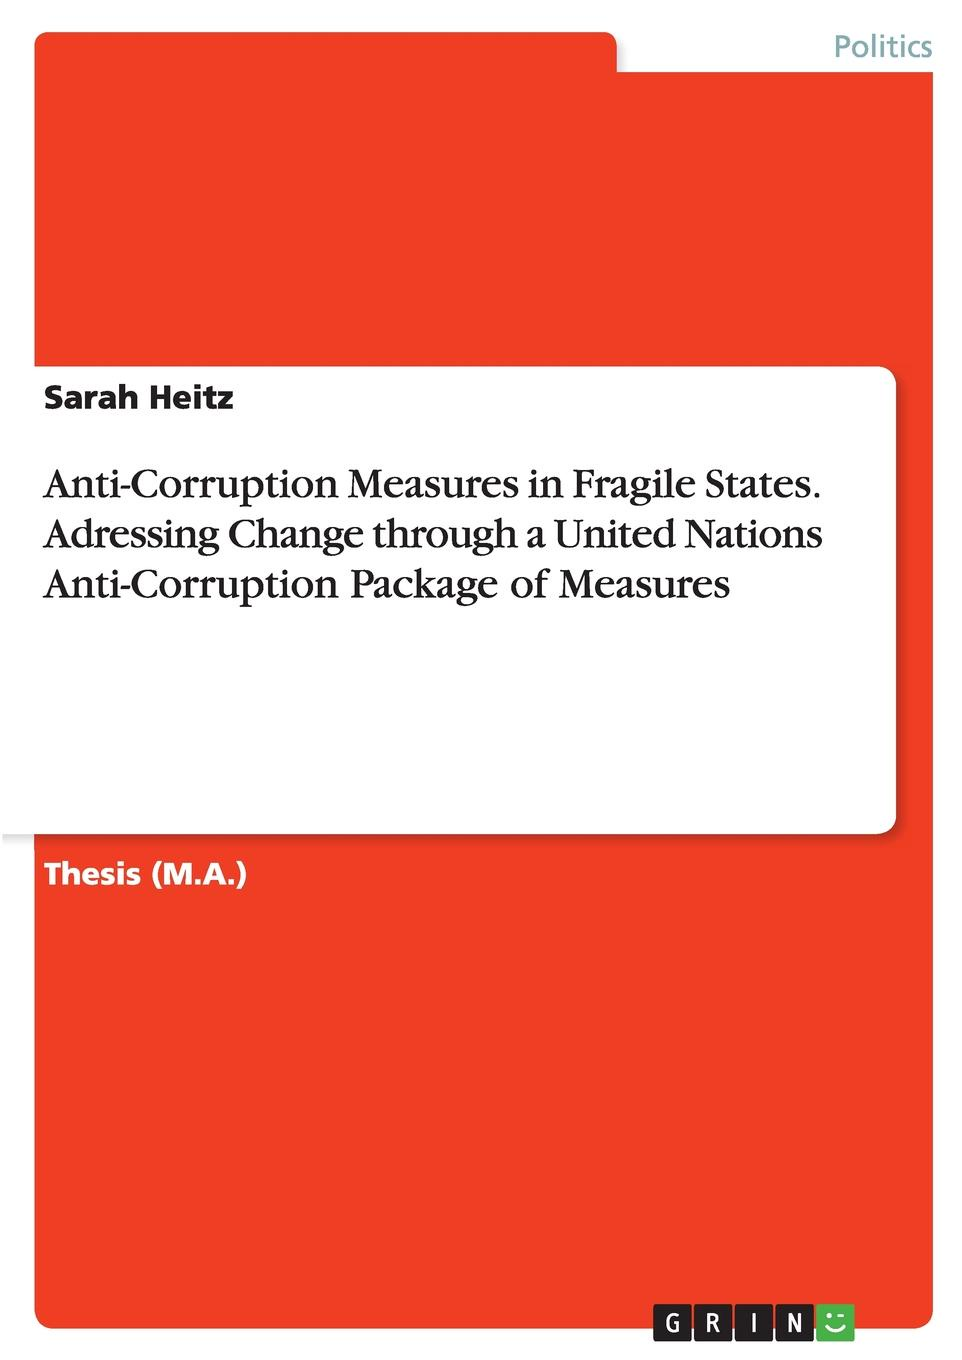 Anti-Corruption Measures in Fragile States. Adressing Change through a United Nations Anti-Corruption Package of Measures